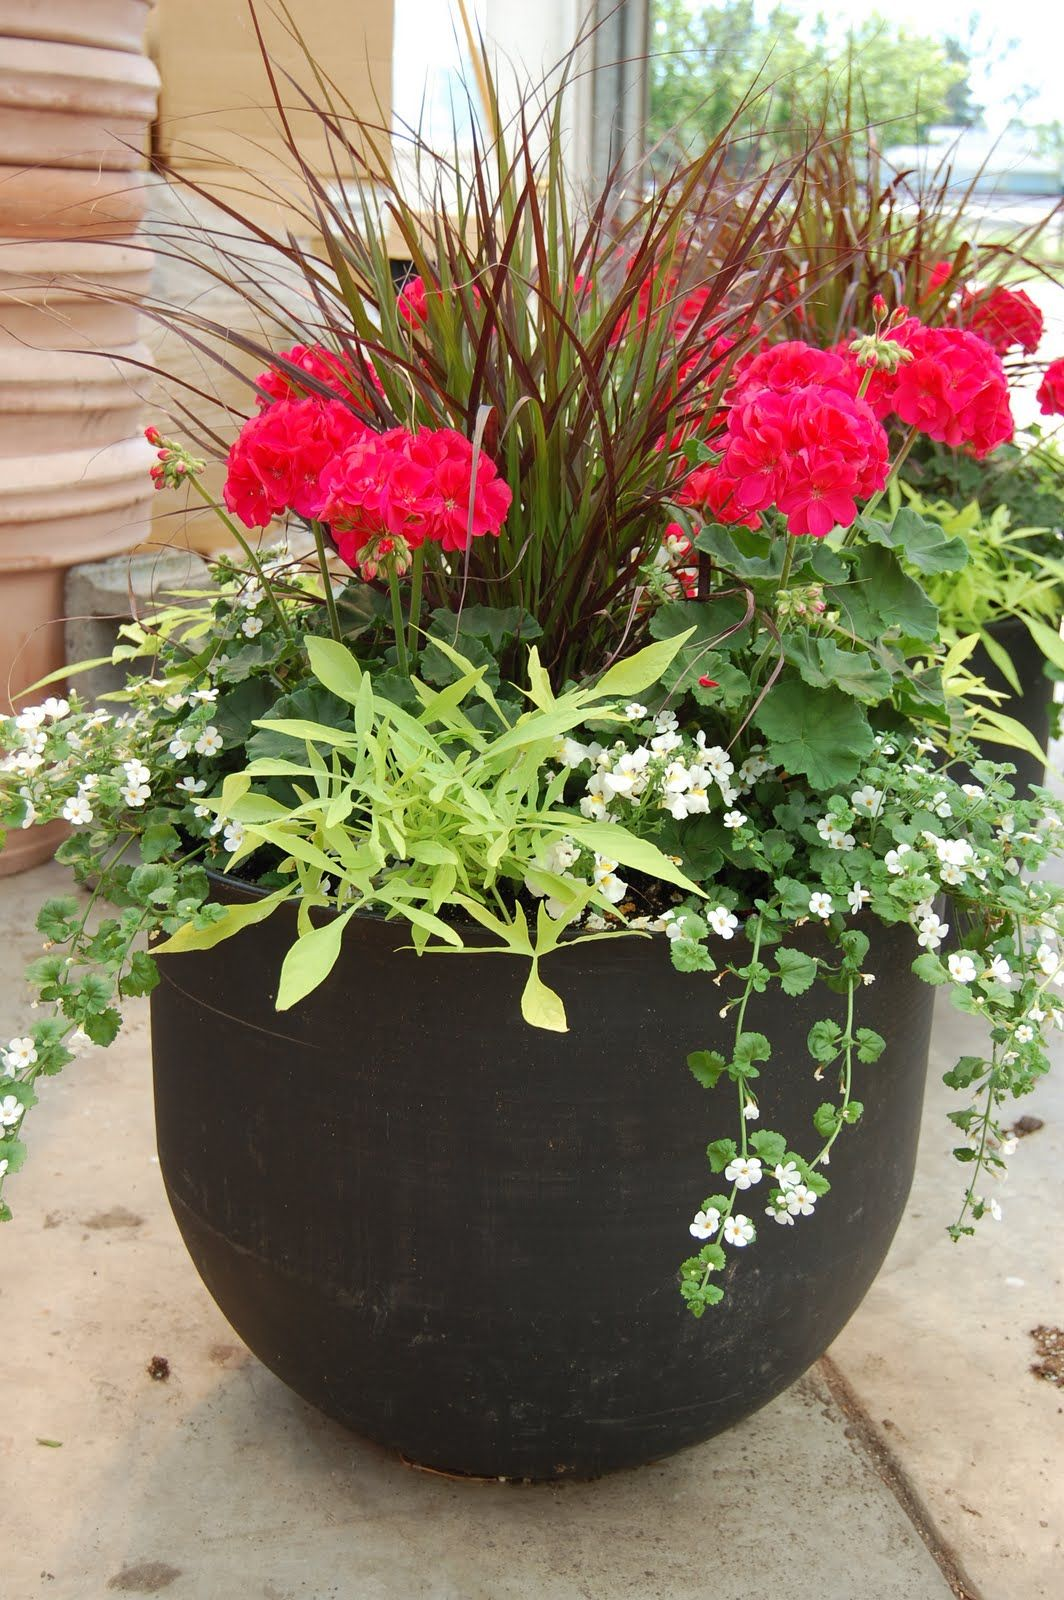 Incroyable Marvelous Plants For Patio #4 Patio Garden Potted Plants